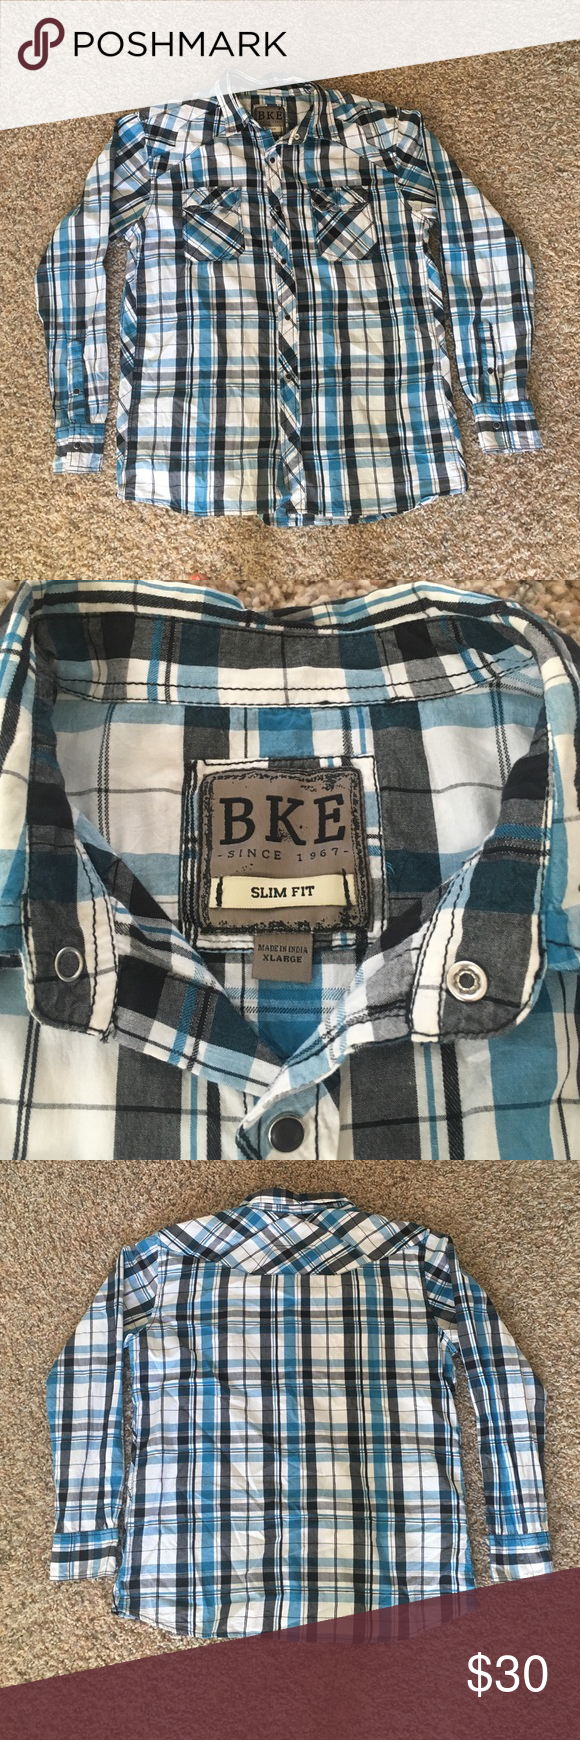 BKE slim fit button up long sleeve shirt XL Like new BKE Slim Fit XL button up shirt. Worn only a few times. Comes from a smoke free animal free home BKE Shirts Casual Button Down Shirts